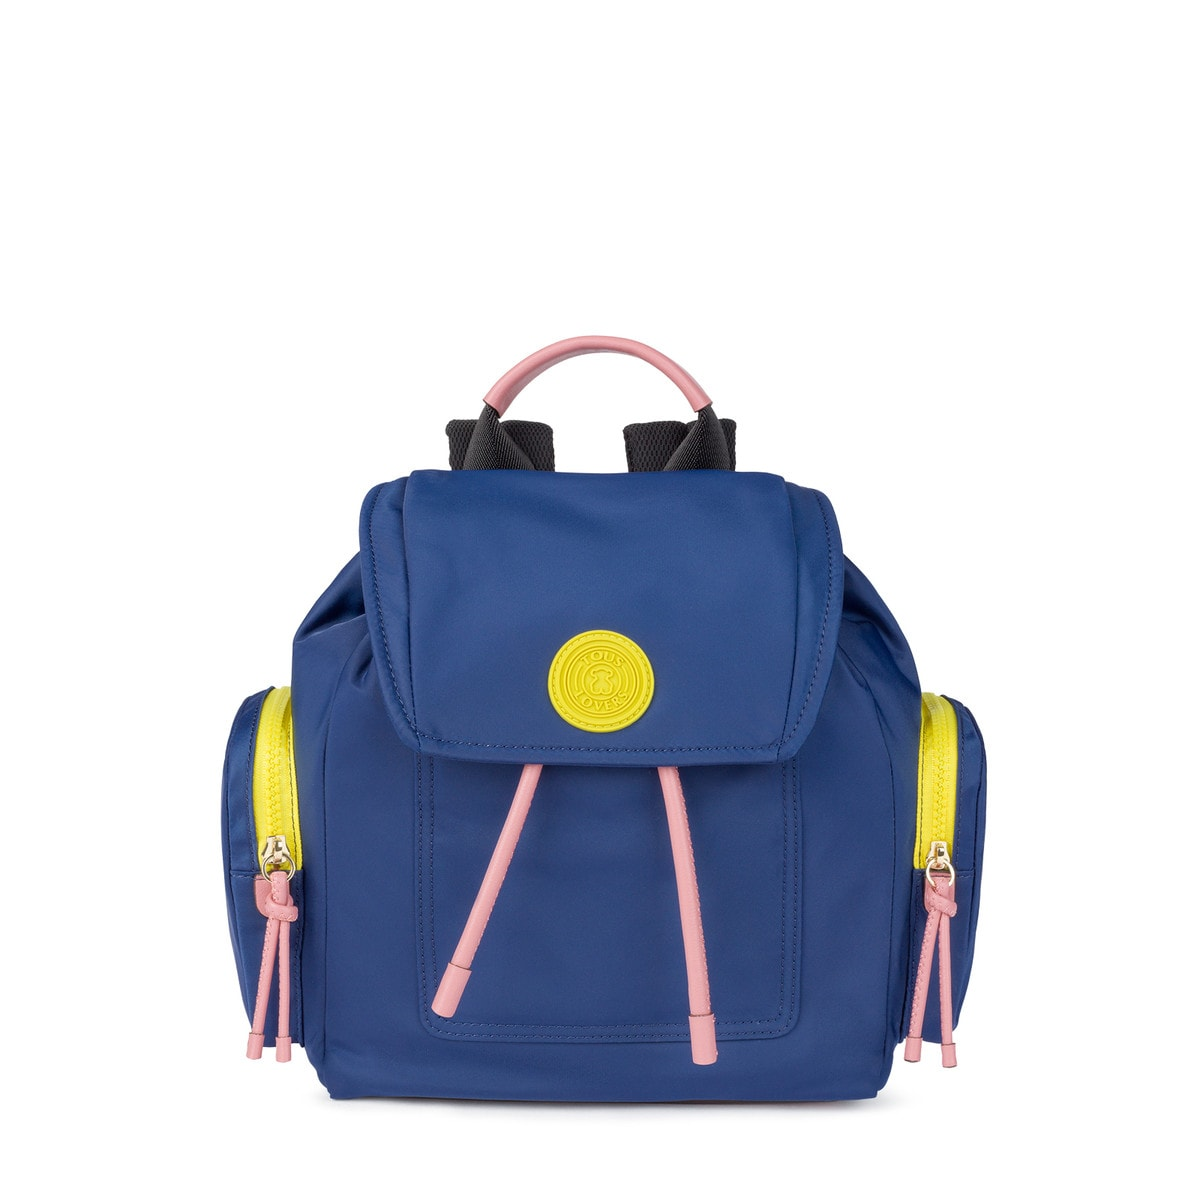 498961339 Small tri-navy colored Doromy Backpack - Tous Site Puerto Rico